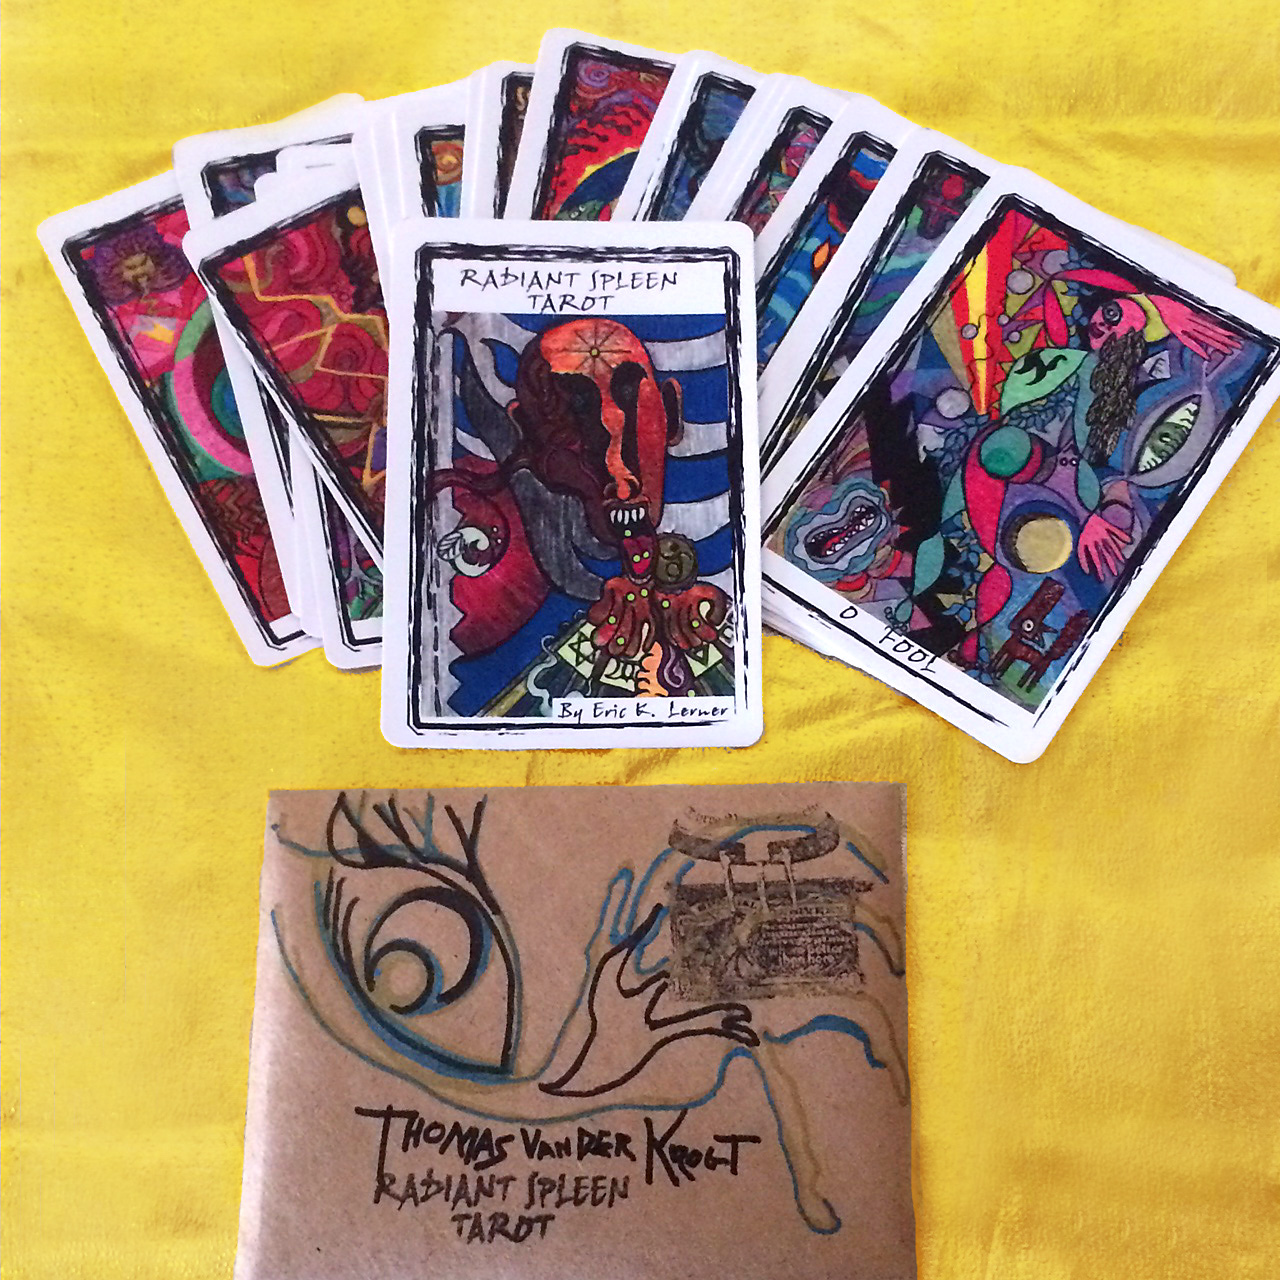 When you publish your own tarot, factors like paper choice and packaging come to the forefront as with the new edition of  The Radiant Spleen Tarot.